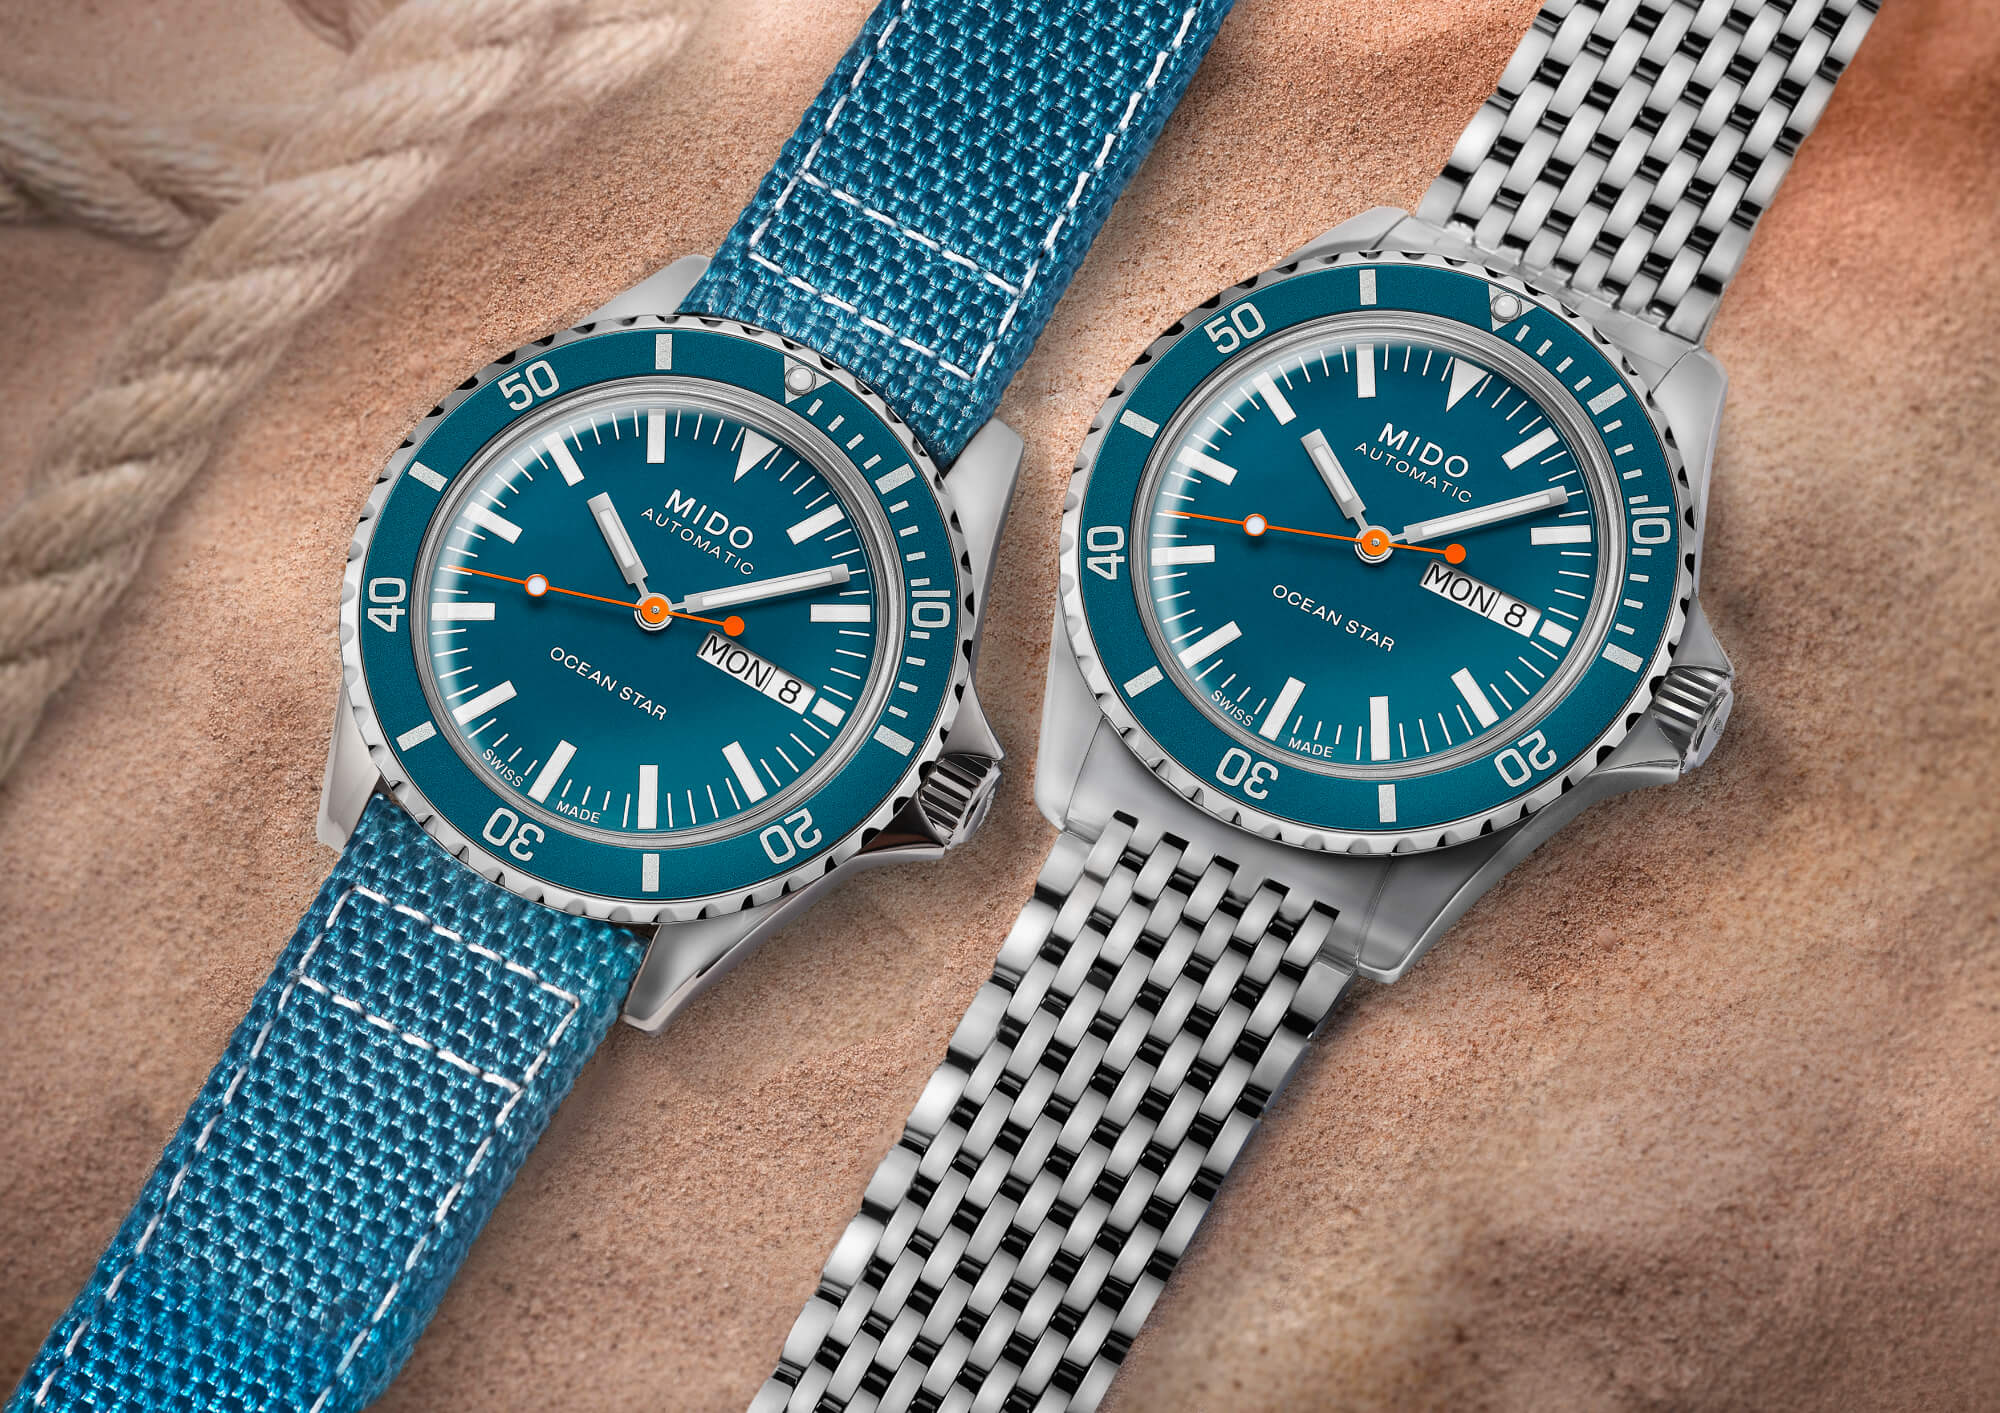 4 Watch Collection for the Price of a Rolex 3